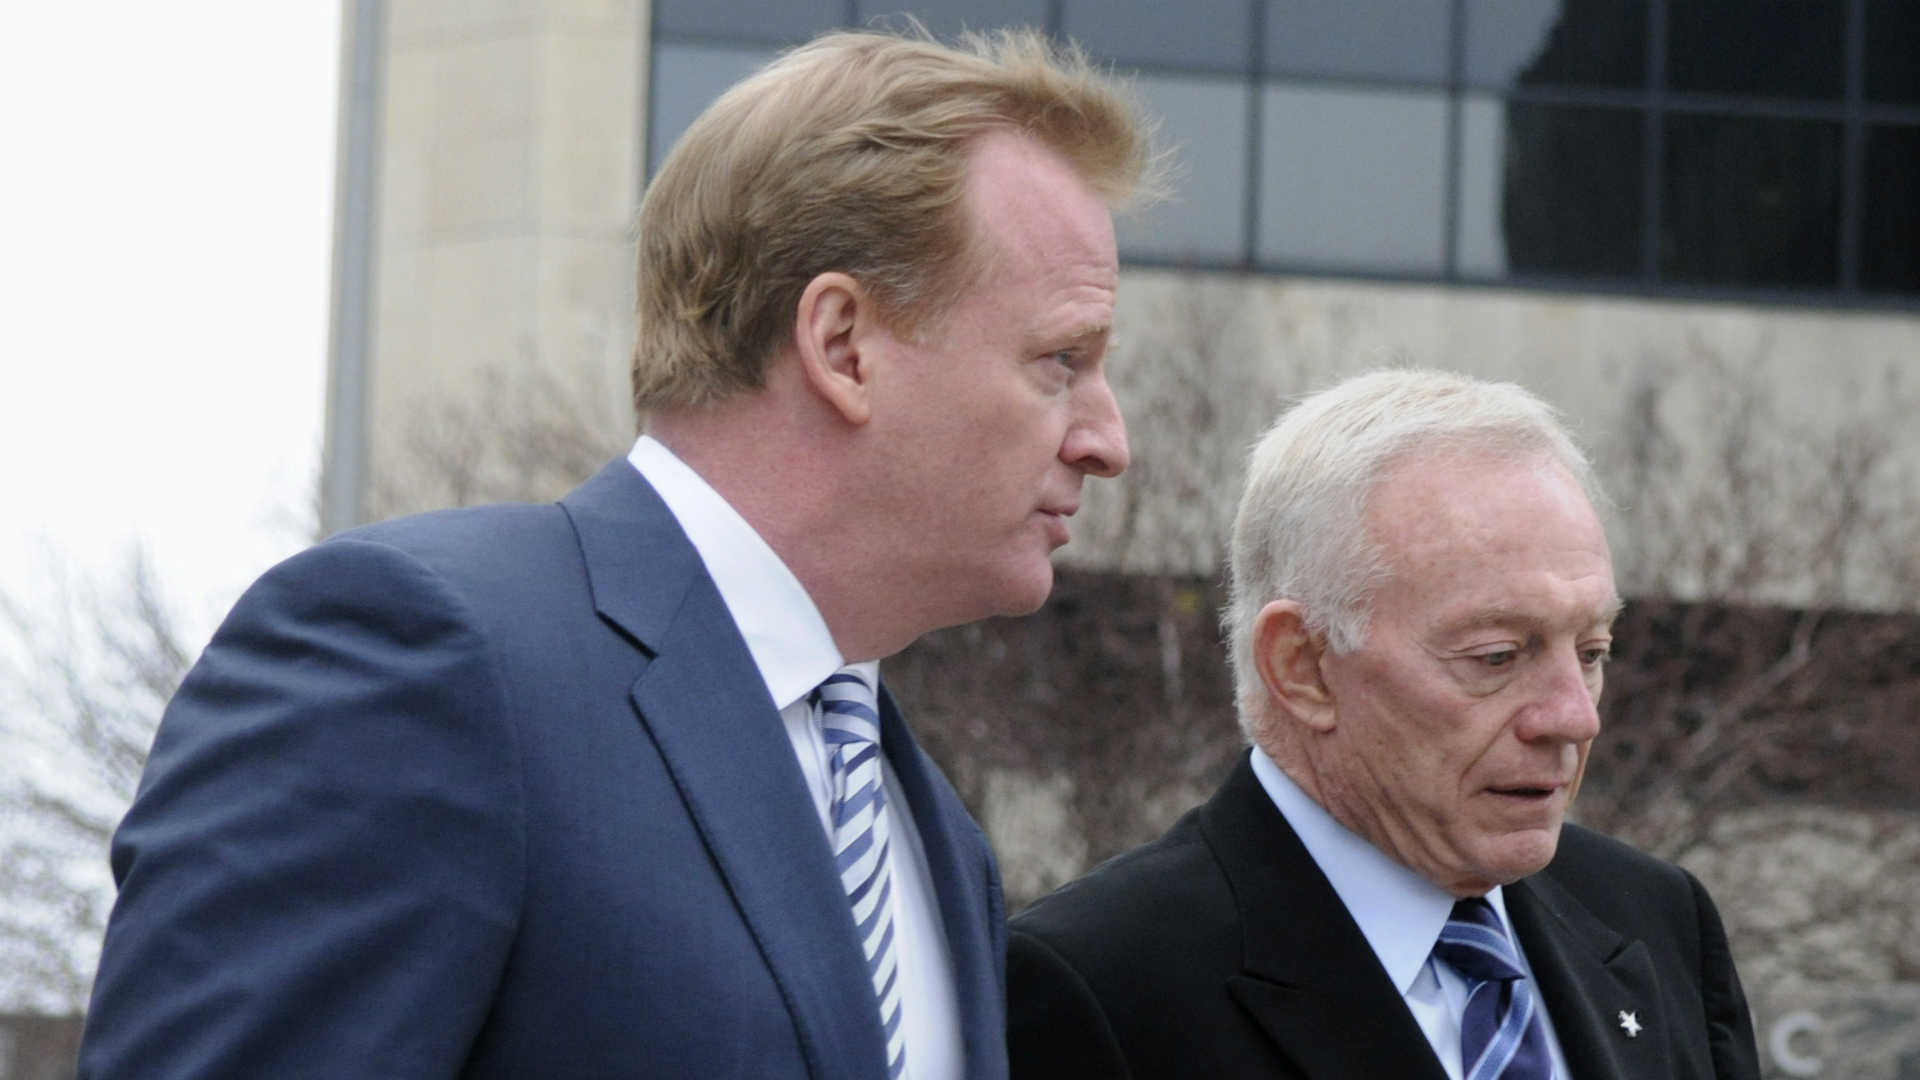 Roger Goodell to fine Jerry Jones millions for challenging contract, report says